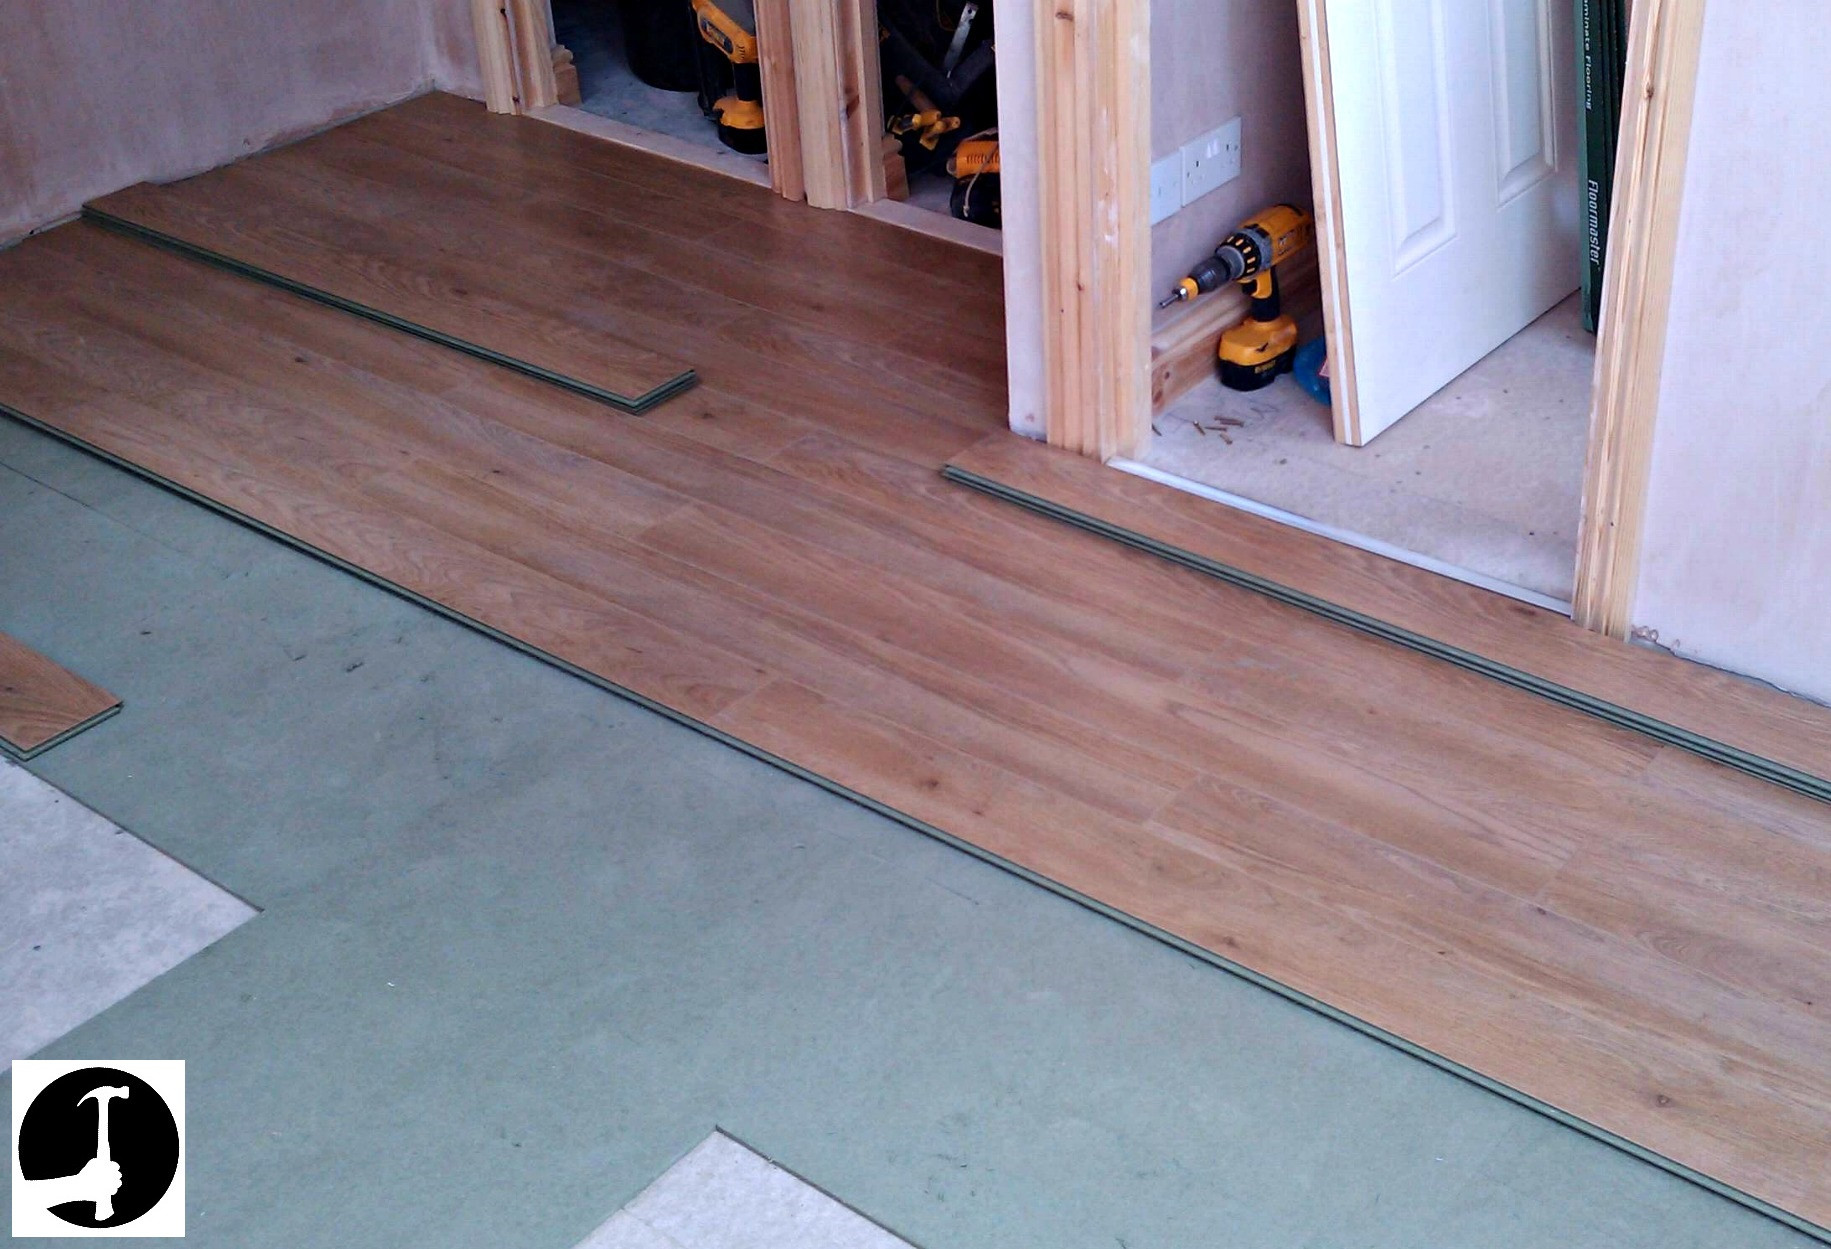 glue down engineered hardwood flooring vs floating of how to install laminate flooring with ease glued glue less systems in laminate started